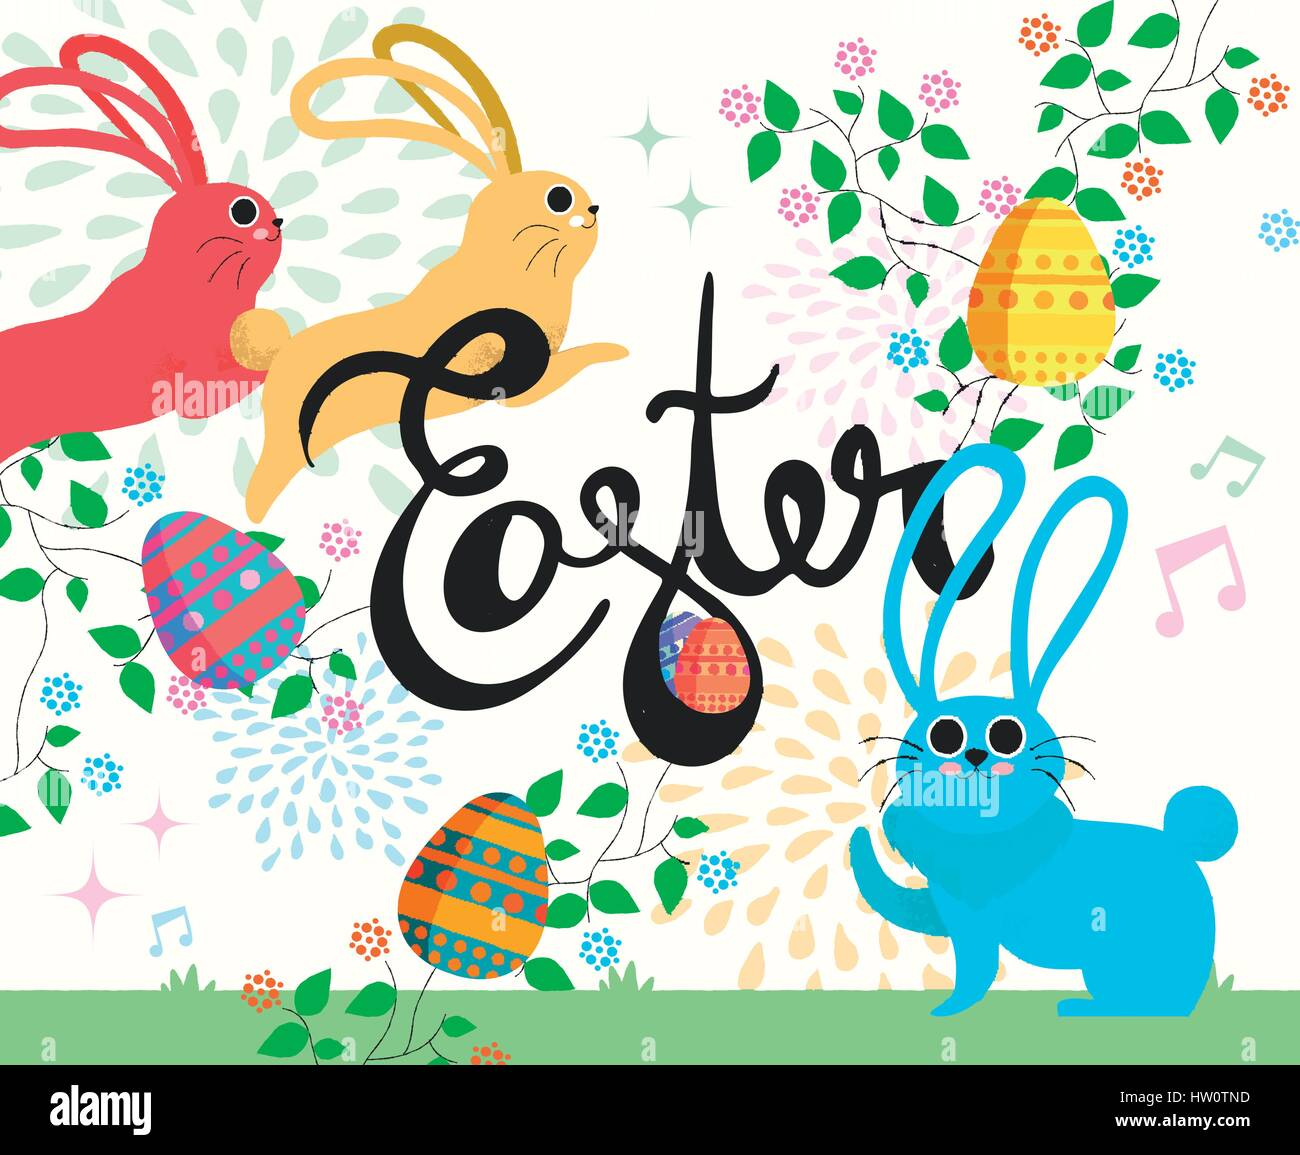 Easter Card Illustration Happy Cartoon Rabbits In Spring With Hand